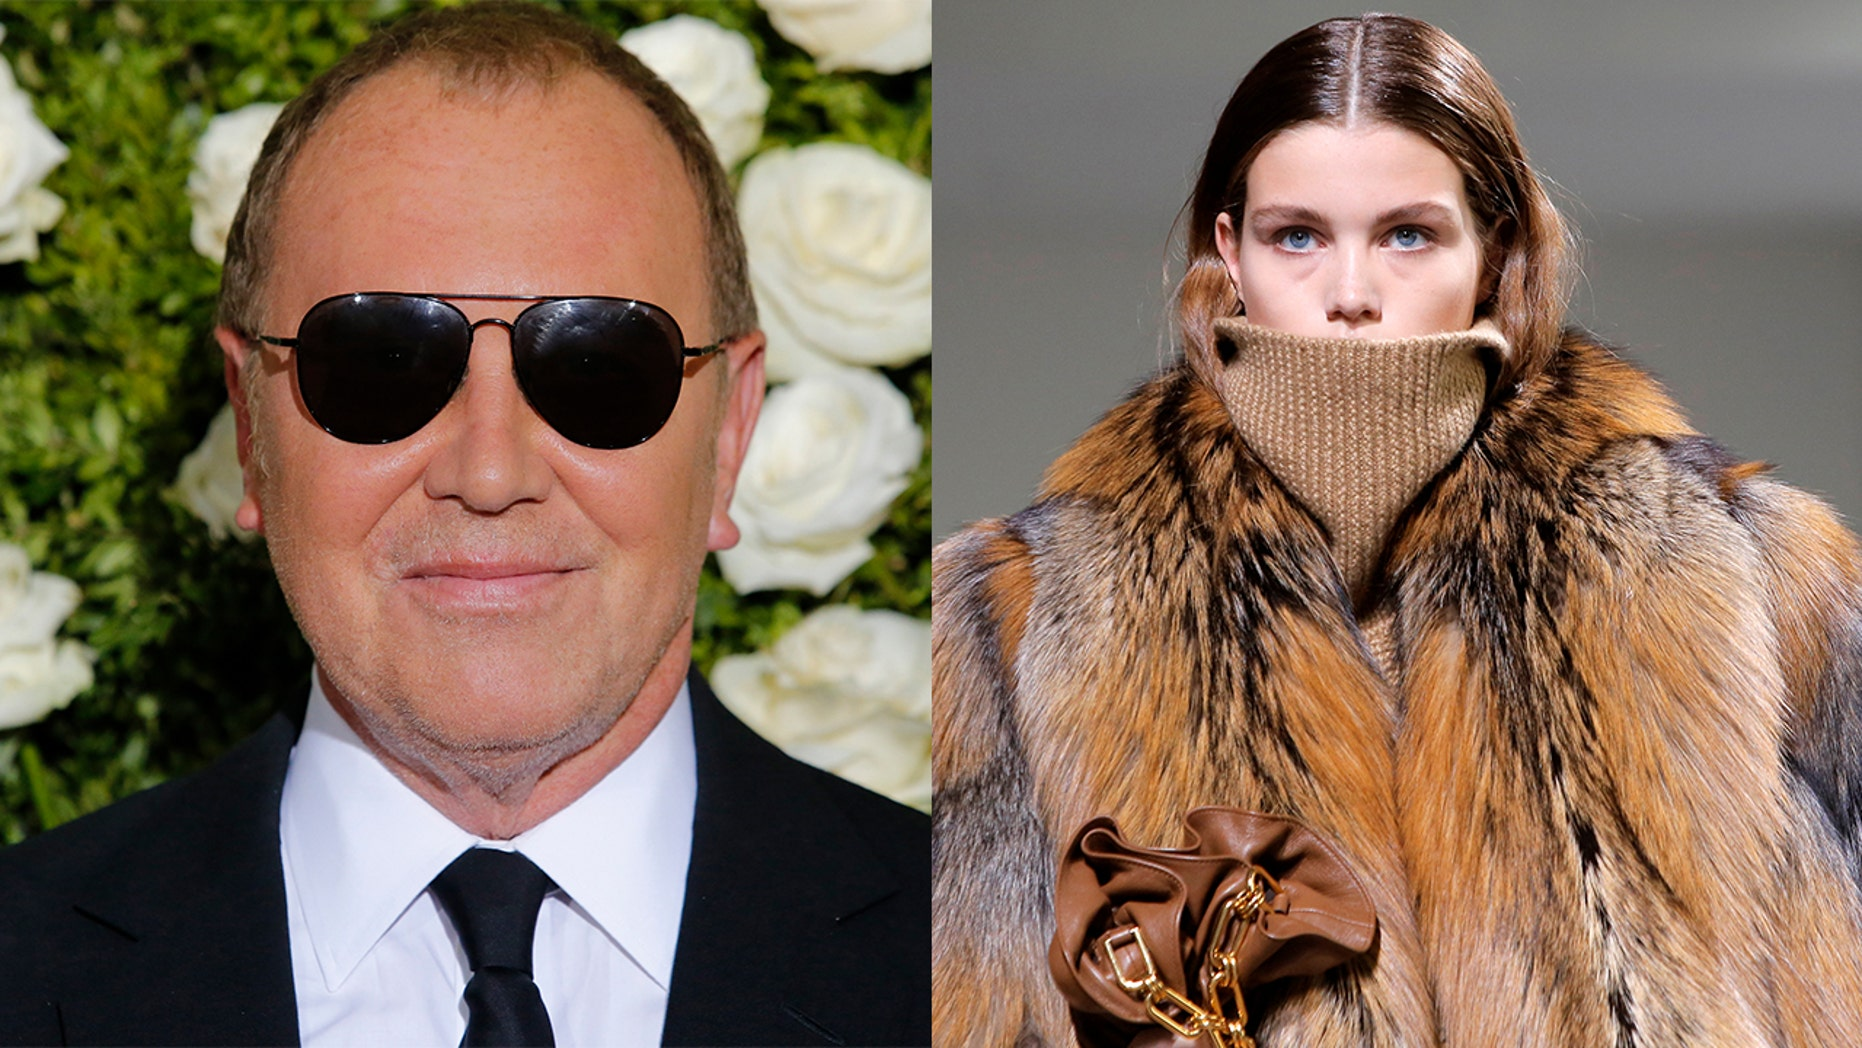 Kors isn't the first designer who's pledged to go fur-free. Gucci, Calvin Klein, Ralph Lauren, Tommy Hilfiger and Armani have all previously vowed to drop fur from their collections.